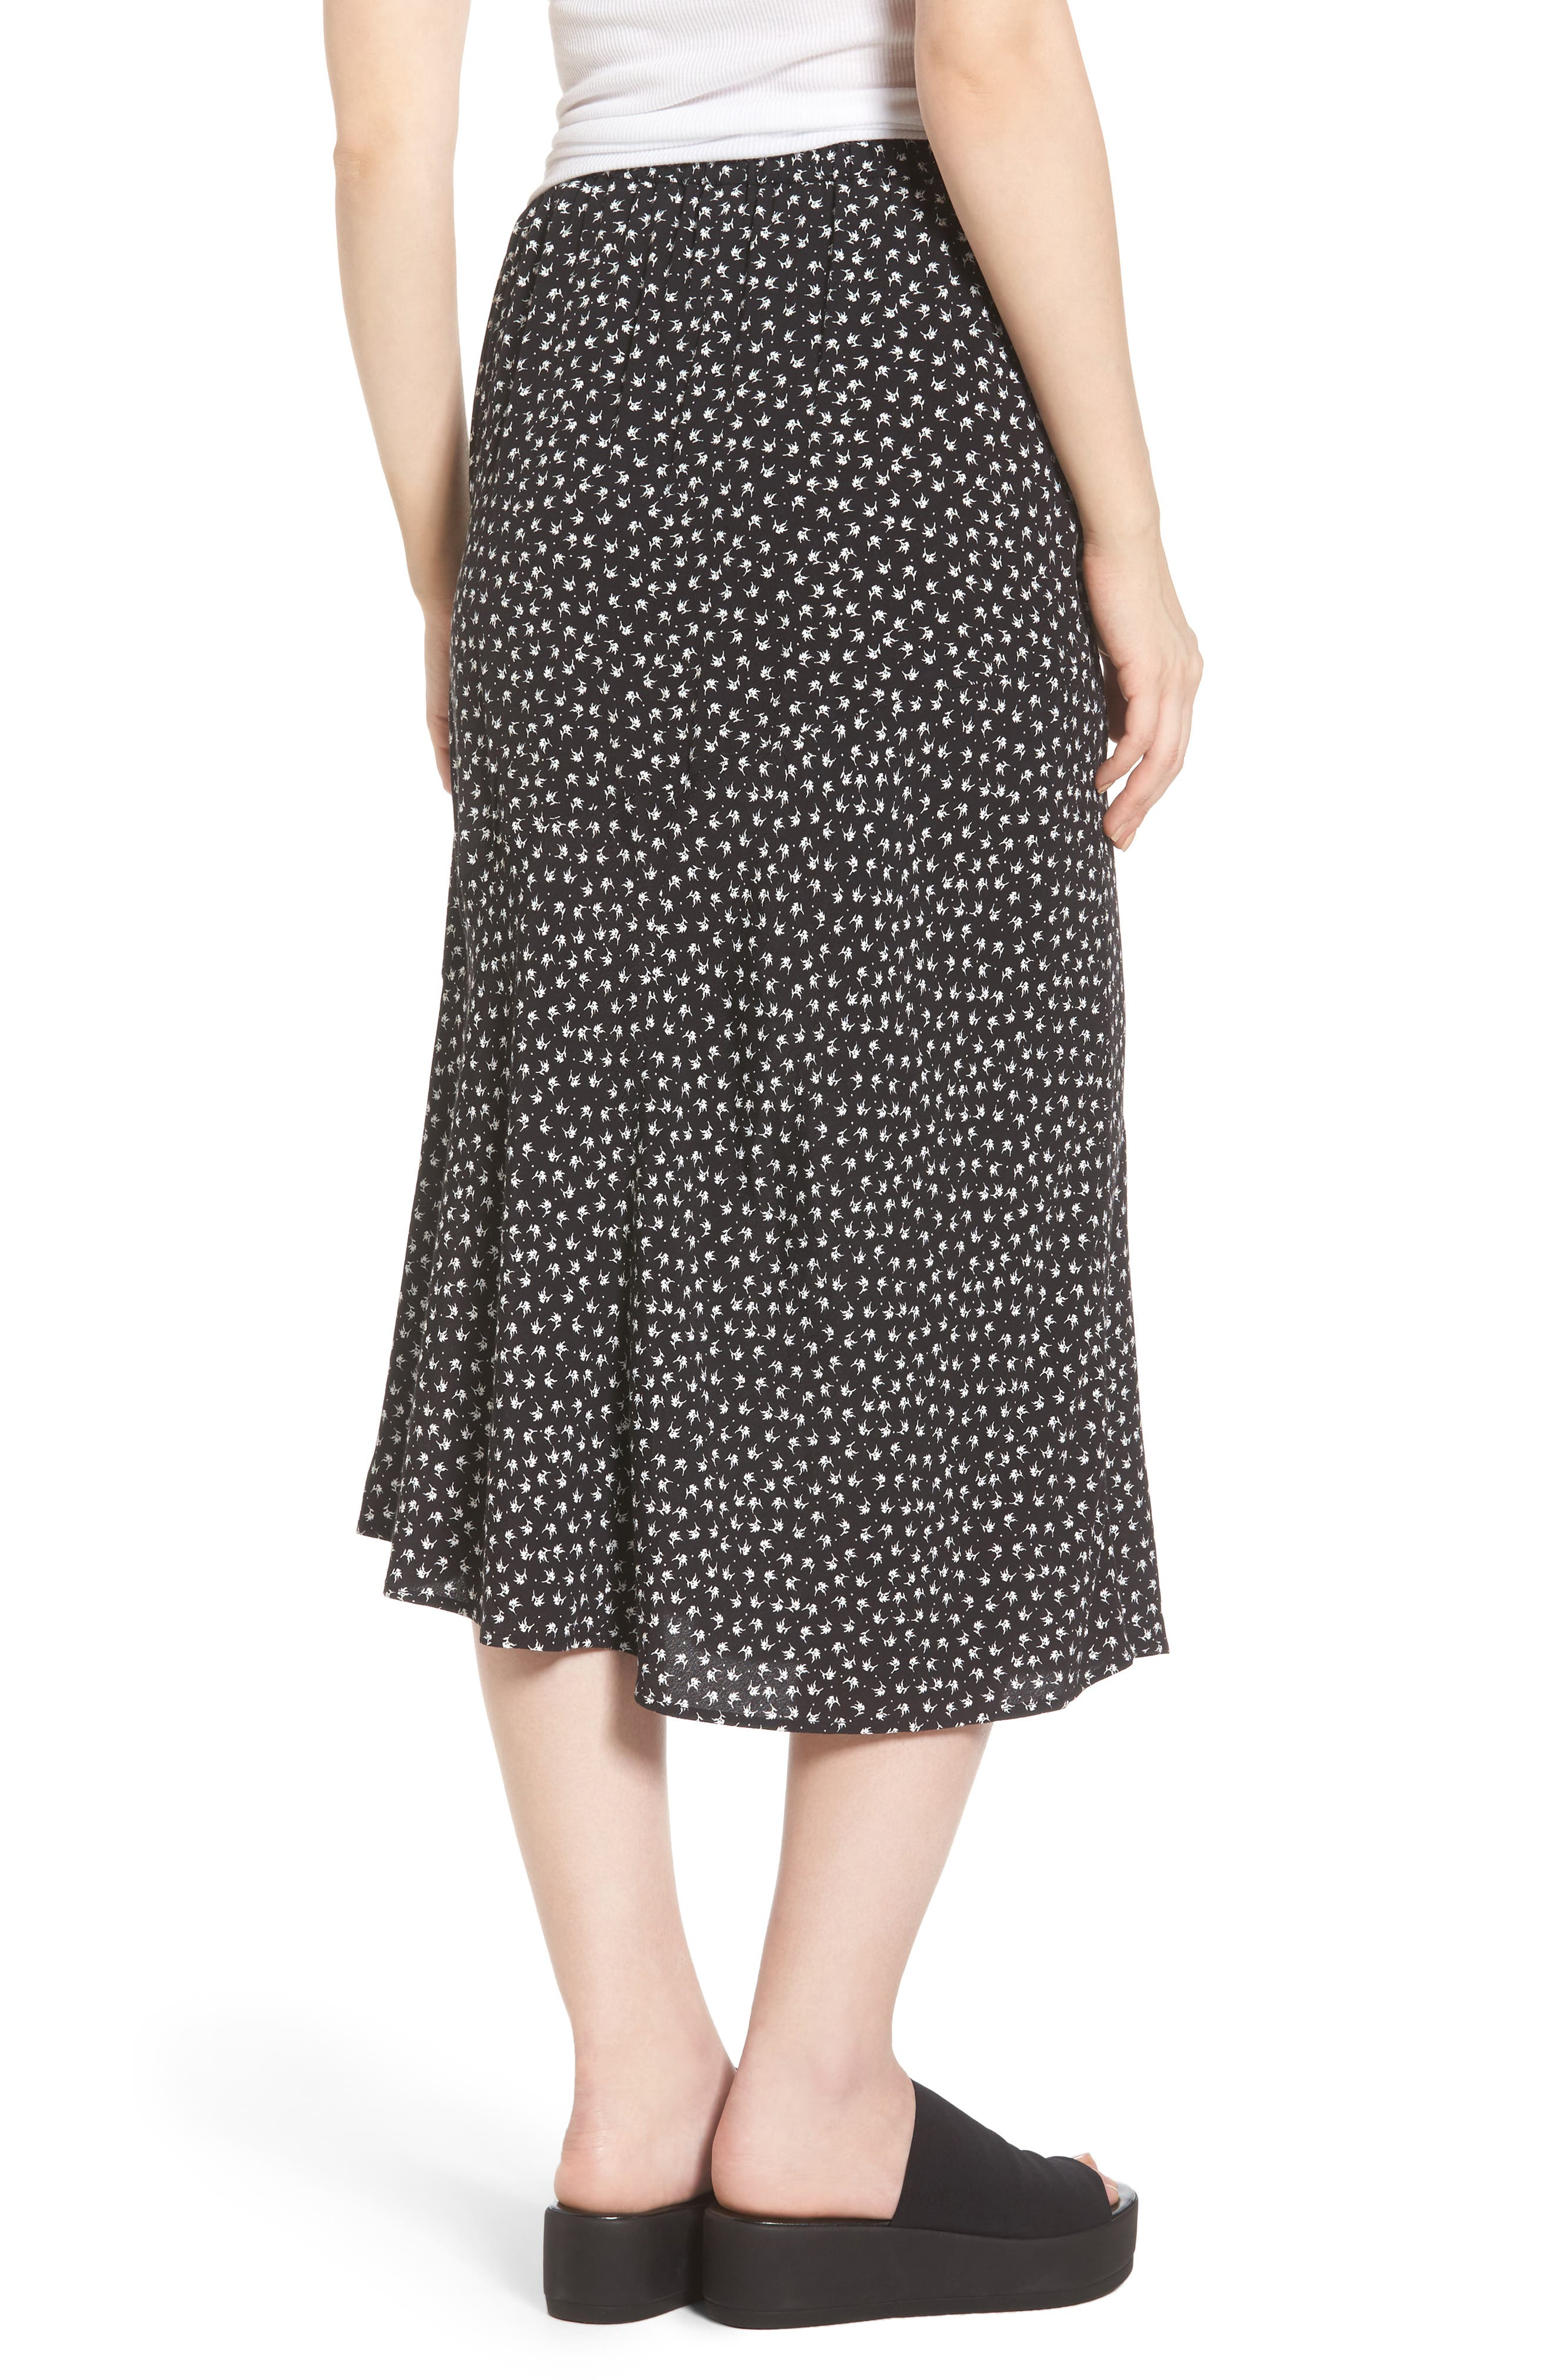 Print Bias Cut Skirt,                             Alternate thumbnail 2, color,                             Black Tsd Stem